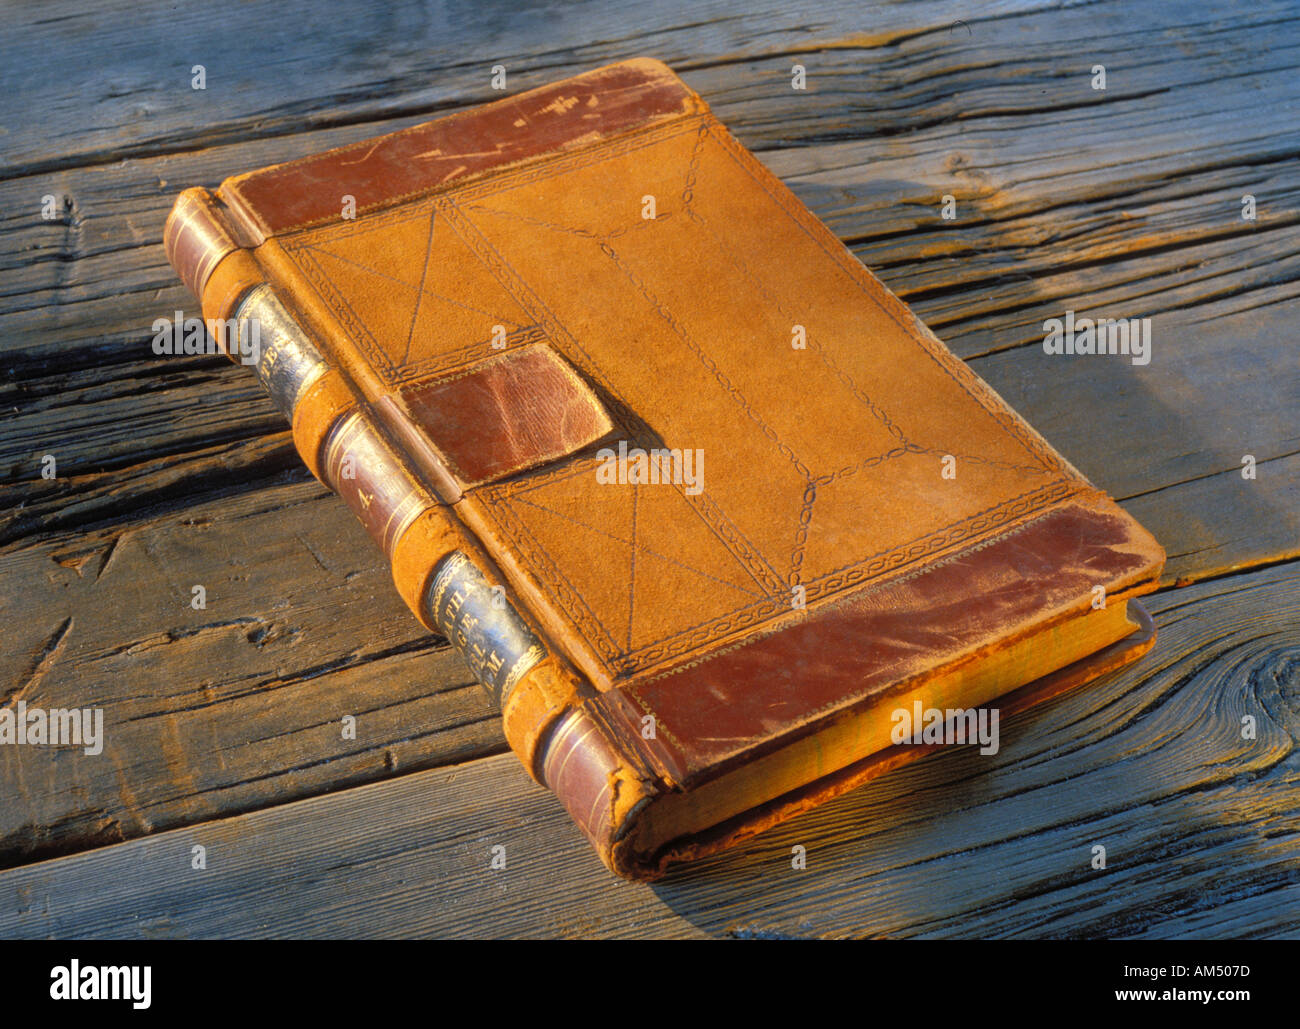 old leather covered journal or book - Stock Image